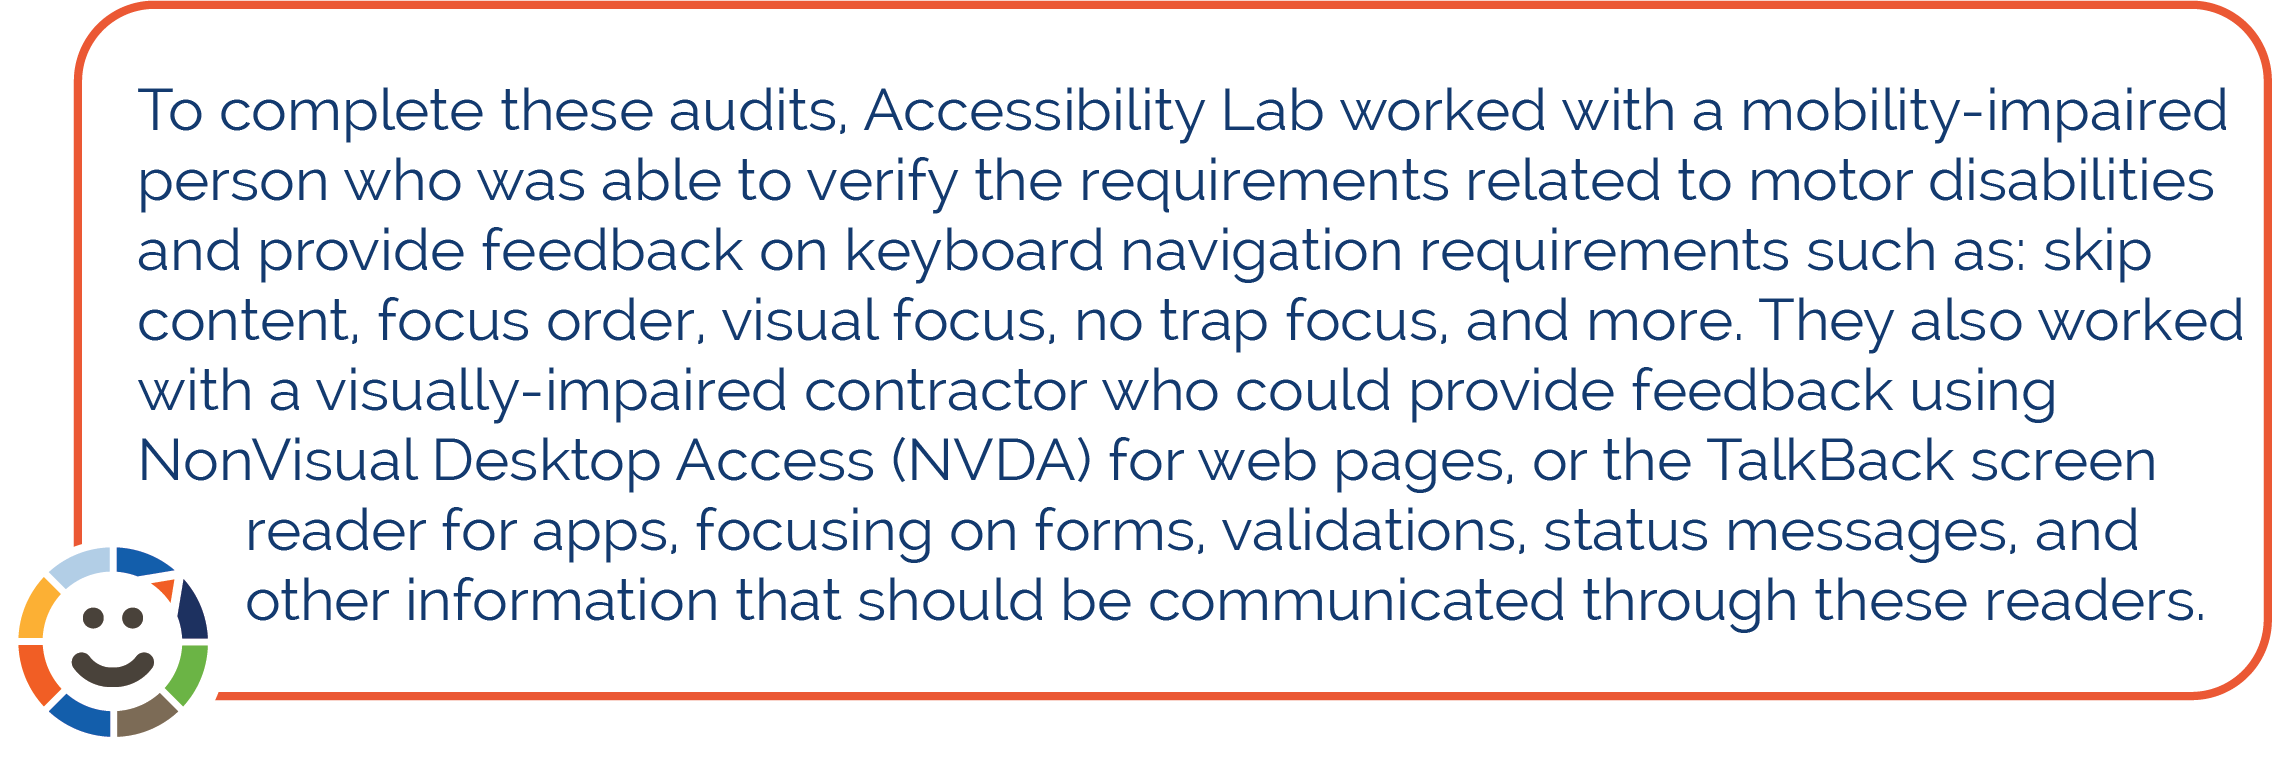 To complete these audits, Accessibility Lab worked with a mobility-impaired person who was able to verify the requirements related to motor disabilities and provide feedback on keyboard navigation requirements such as: skip content, focus order, visual focus, no trap focus, and more. They also worked with a visually-impaired contractor who could provide feedback using NonVisual Desktop Access (NVDA) for web pages, or the TalkBack screen reader for apps, focusing on forms, validations, status messages, and other information that should be communicated through these readers.